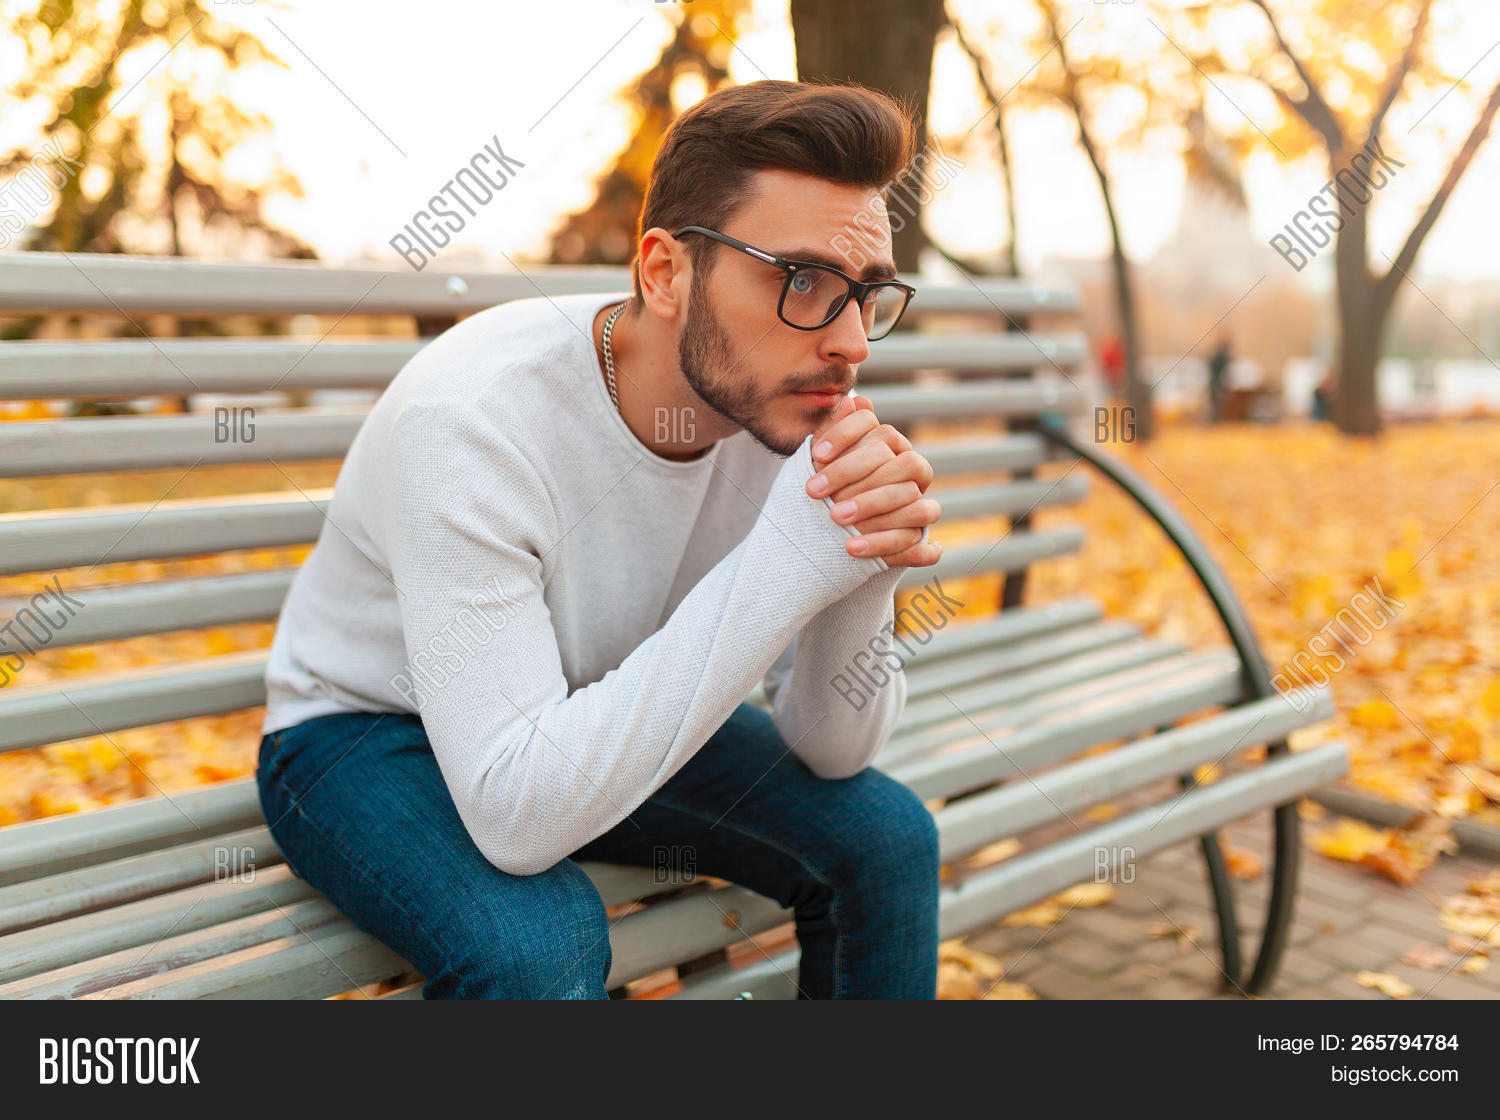 adult,alone,attractive,autumn,beautiful,bench,caucasian,depressed,depression,despair,emotion,exam,expression,face,fall,grief,hard,leaf,leaves,lifestyle,loneliness,lonely,loss,love,male,man,melancholy,nature,one,outdoor,park,people,person,portrait,problem,sad,sadness,season,sitting,solitude,sorrow,stress,student,trouble,unhappy,upset,worried,yellow,young,youth